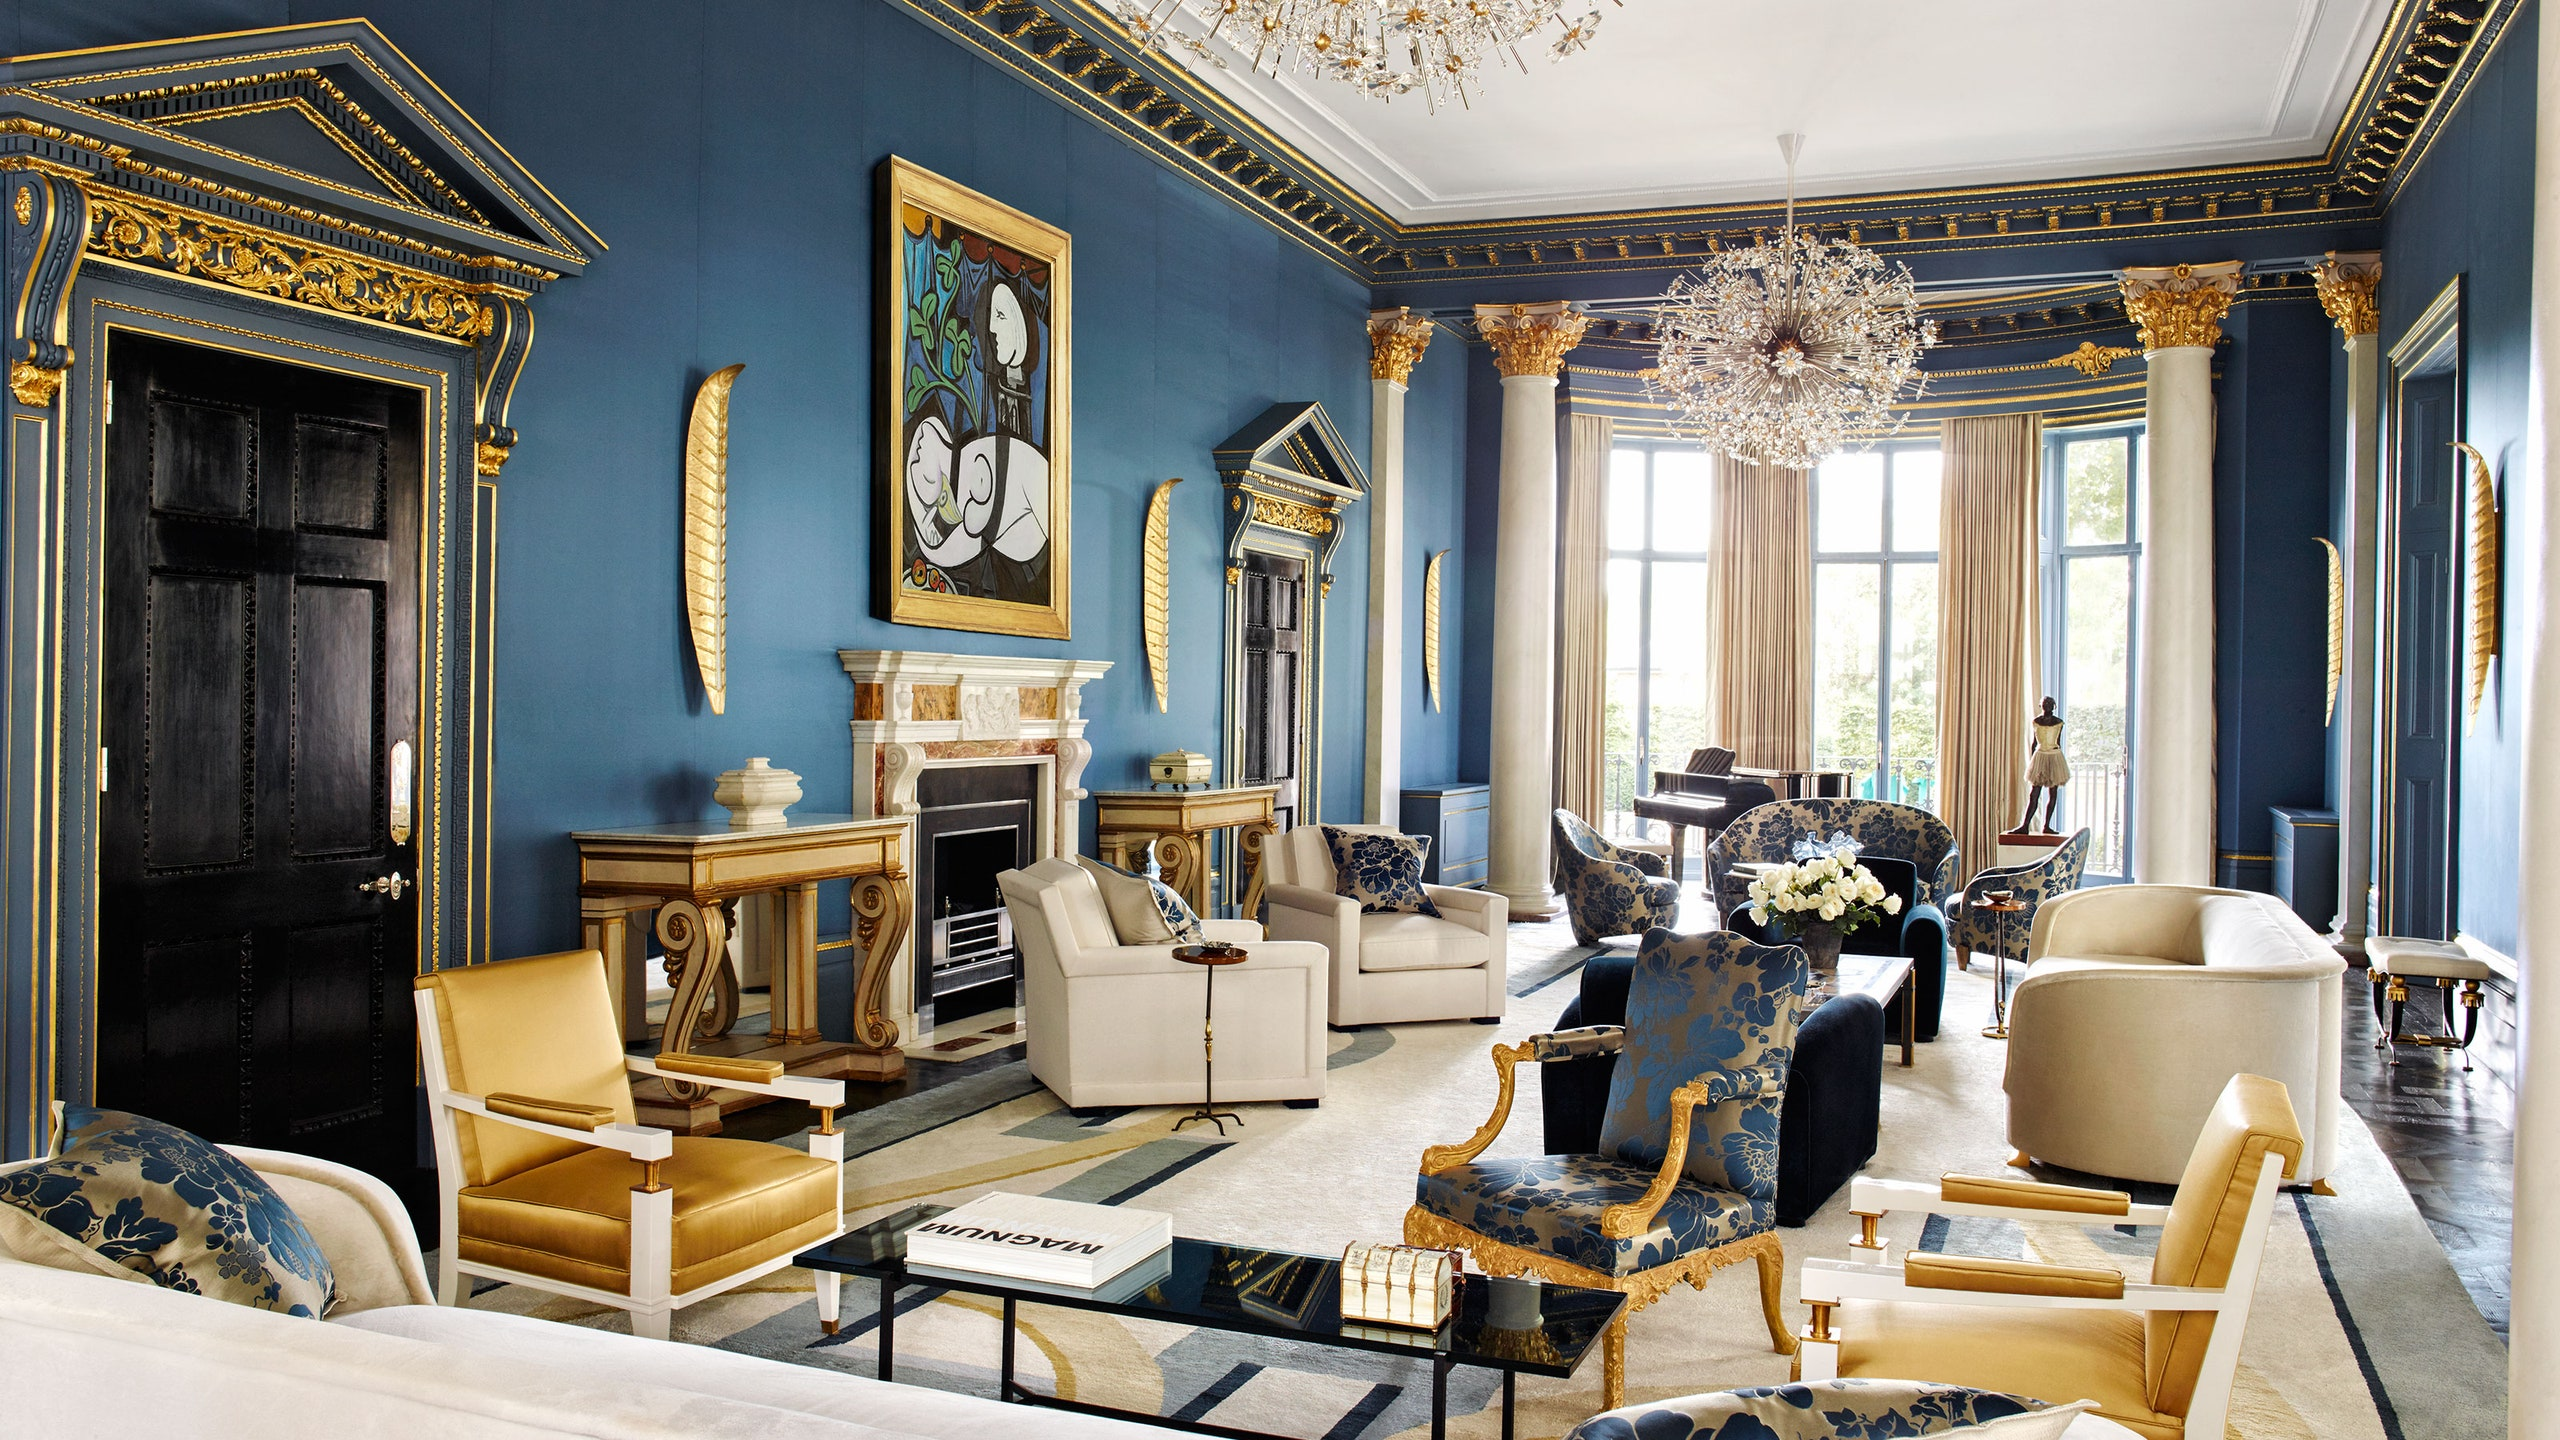 Here You'll Discover The Most Outstanding Interior Projects of Haynes-Roberts! Take a Look Inside!